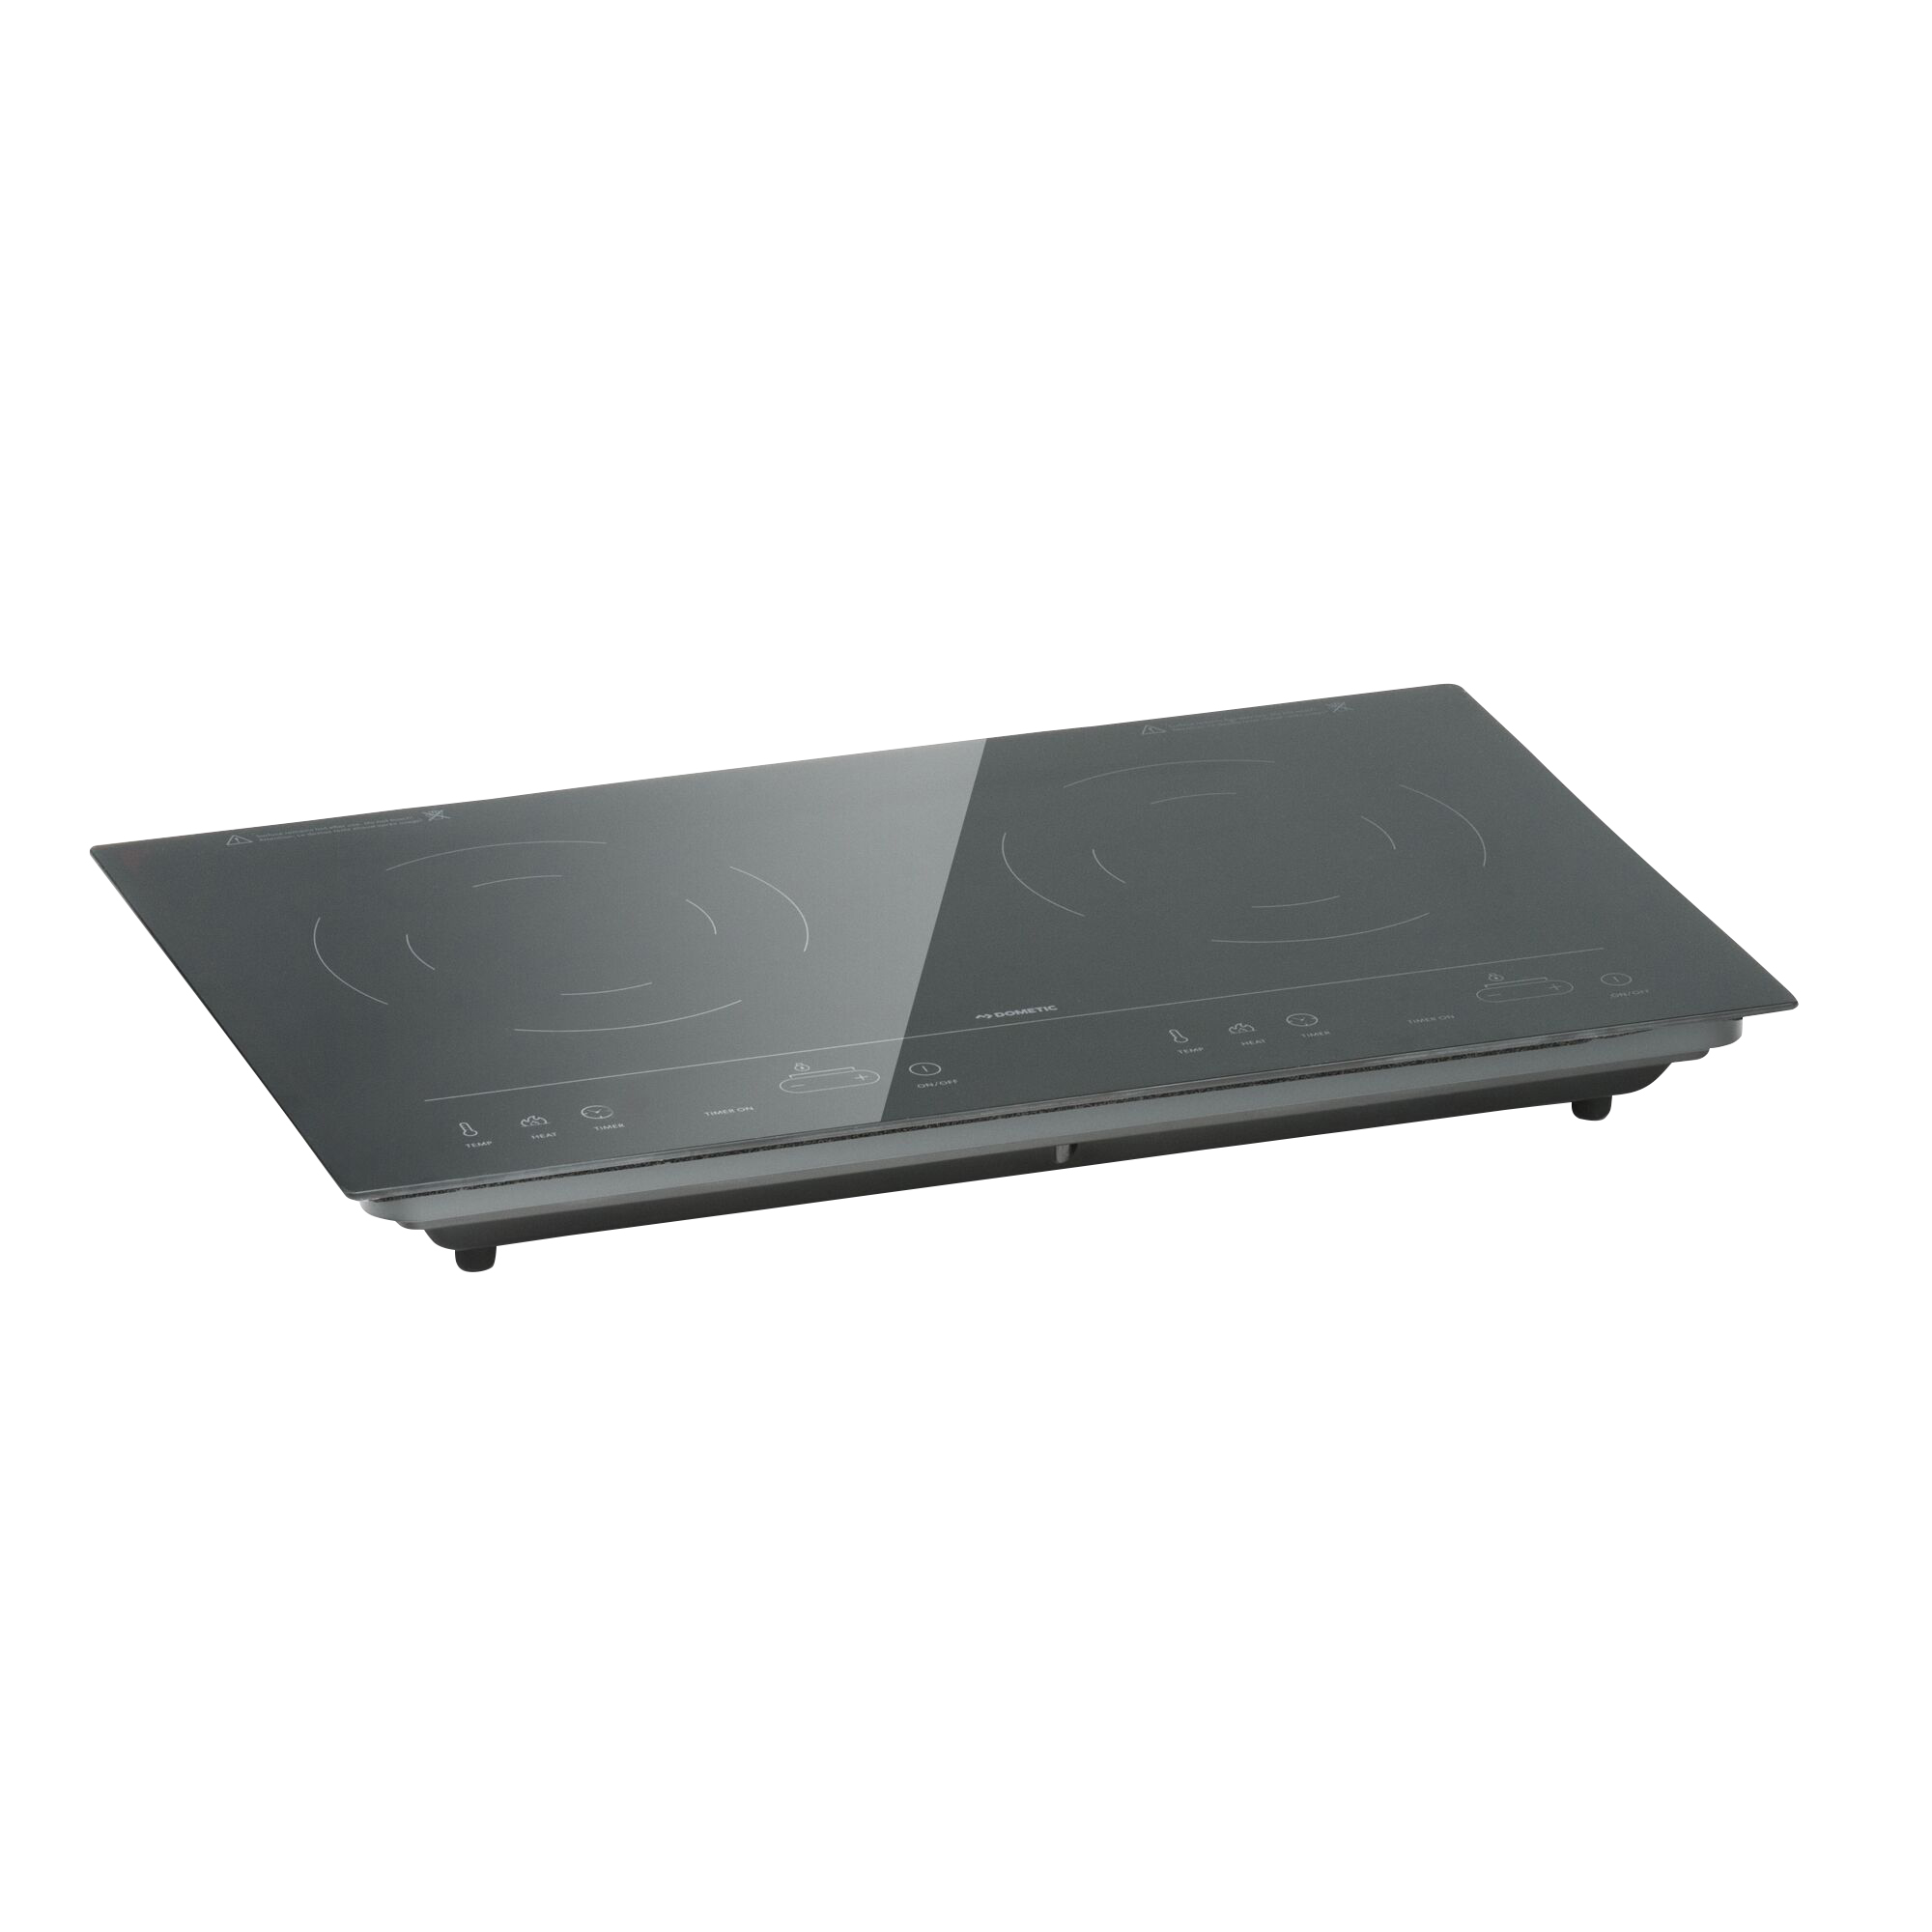 Dometic CI21 Induction Cooktop photo